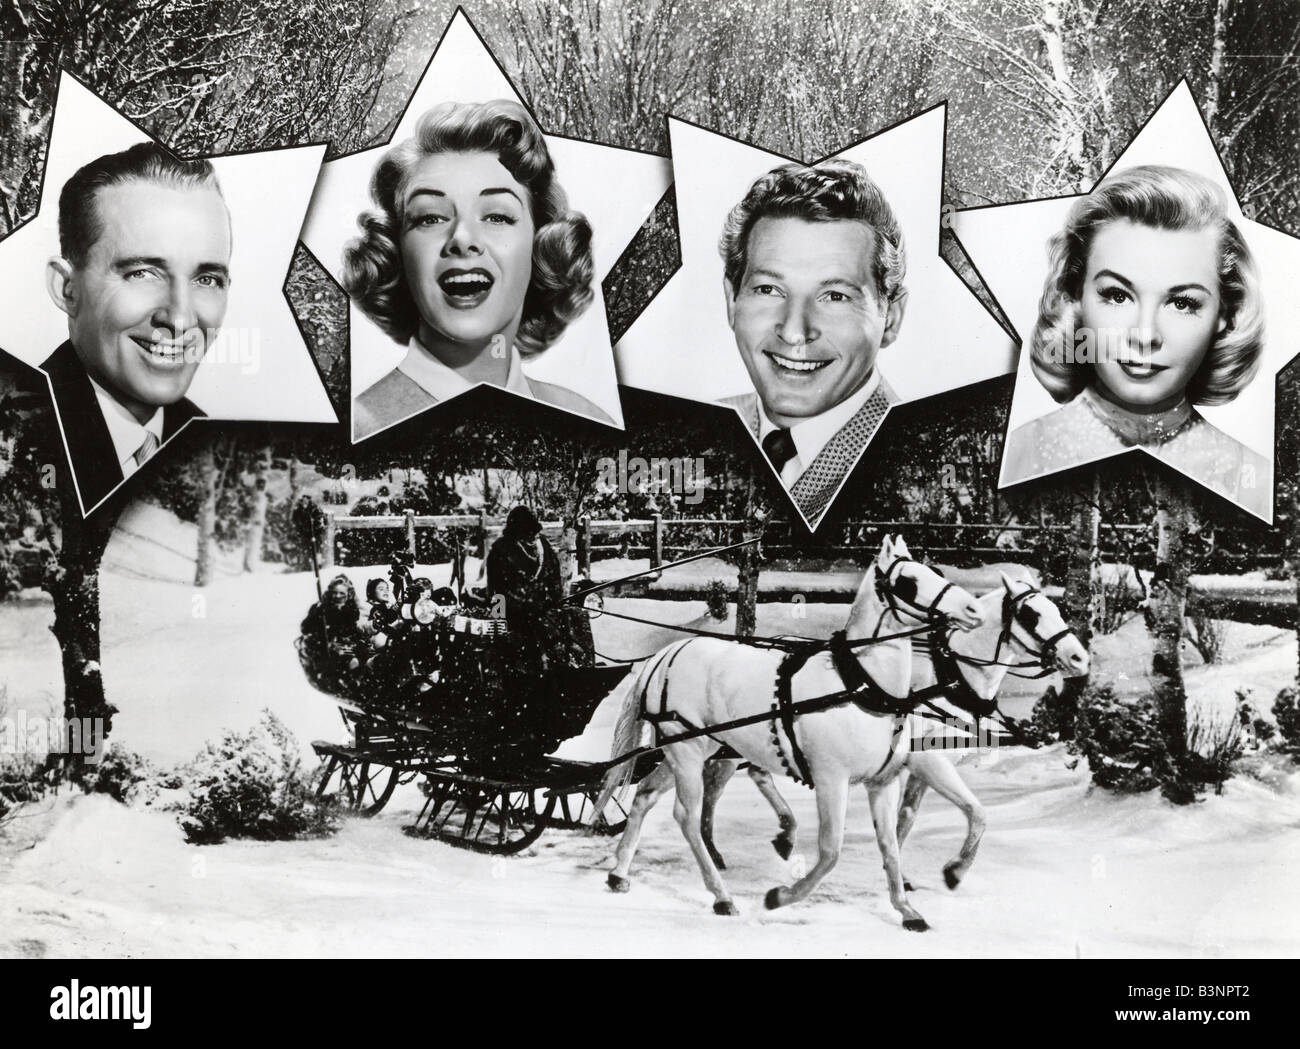 WHITE CHRISTMAS 1954 Paramount film with from left Bing Crosby, Rosemary  Clooney, Danny Kaye